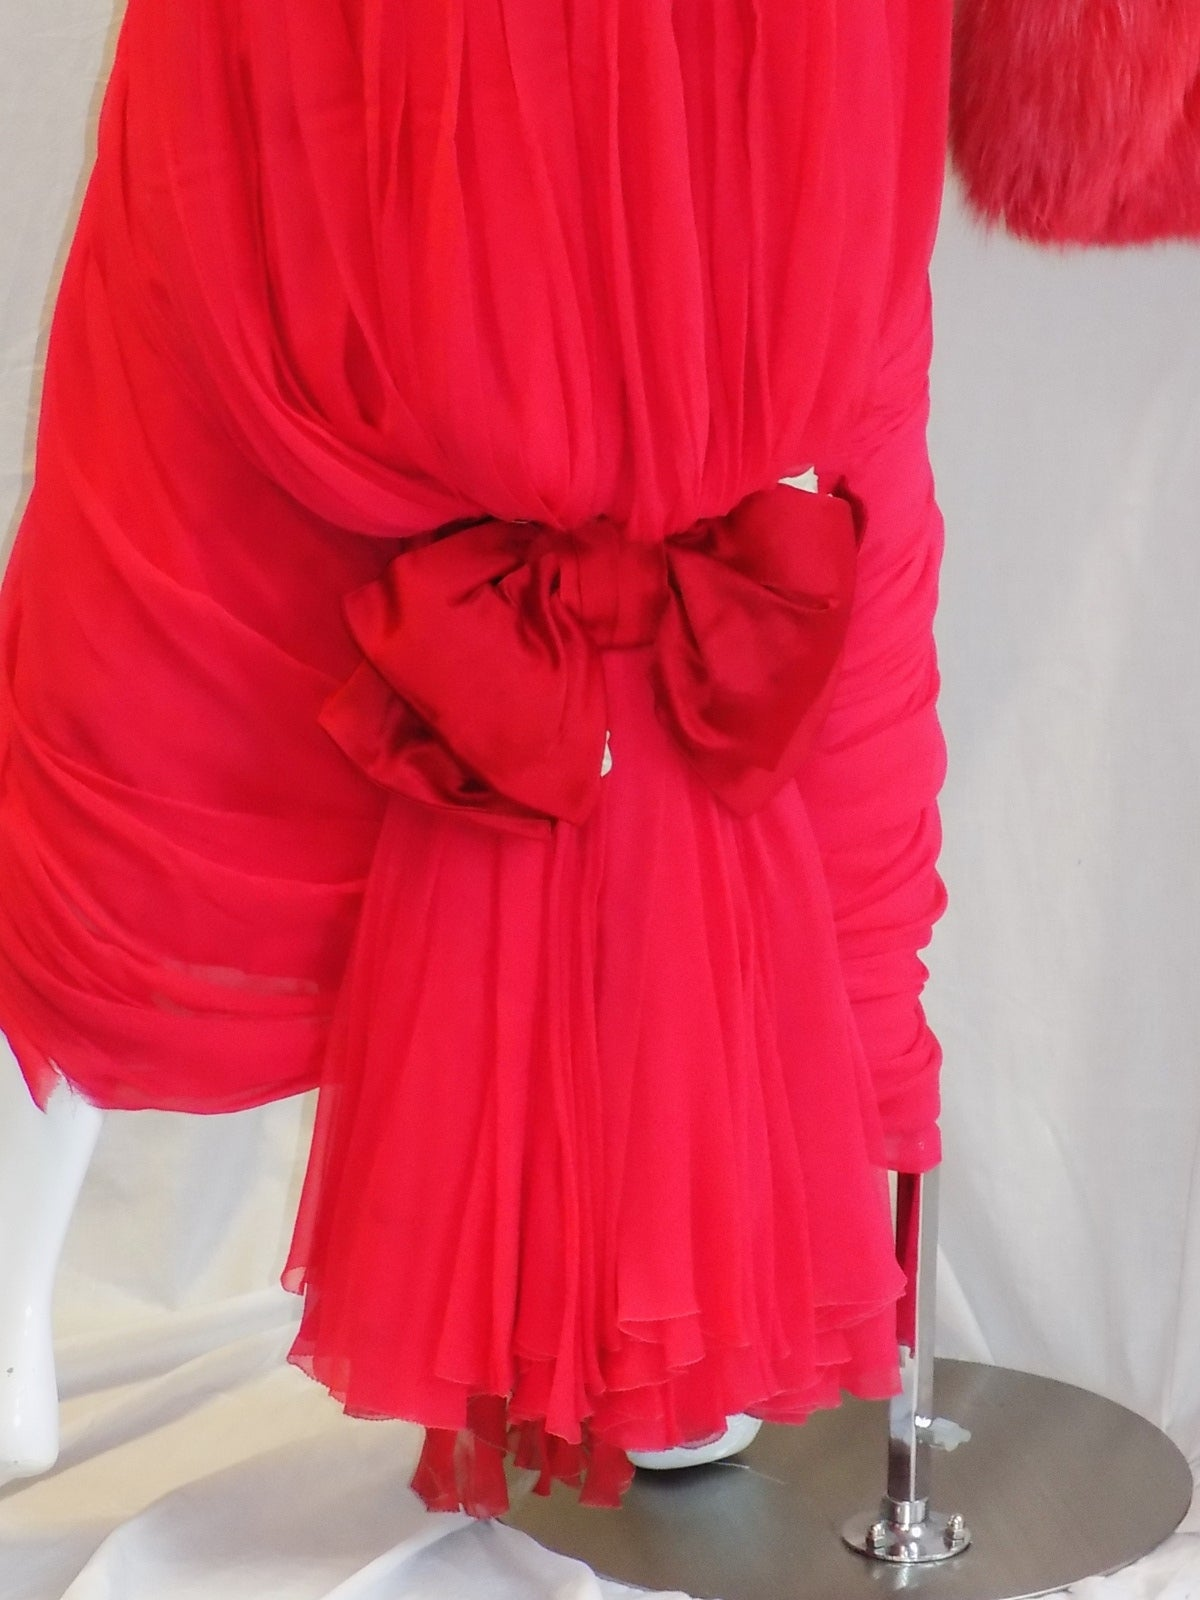 Iconic Jean Dessès Red draped gown with Fox fur stole 1950's 7